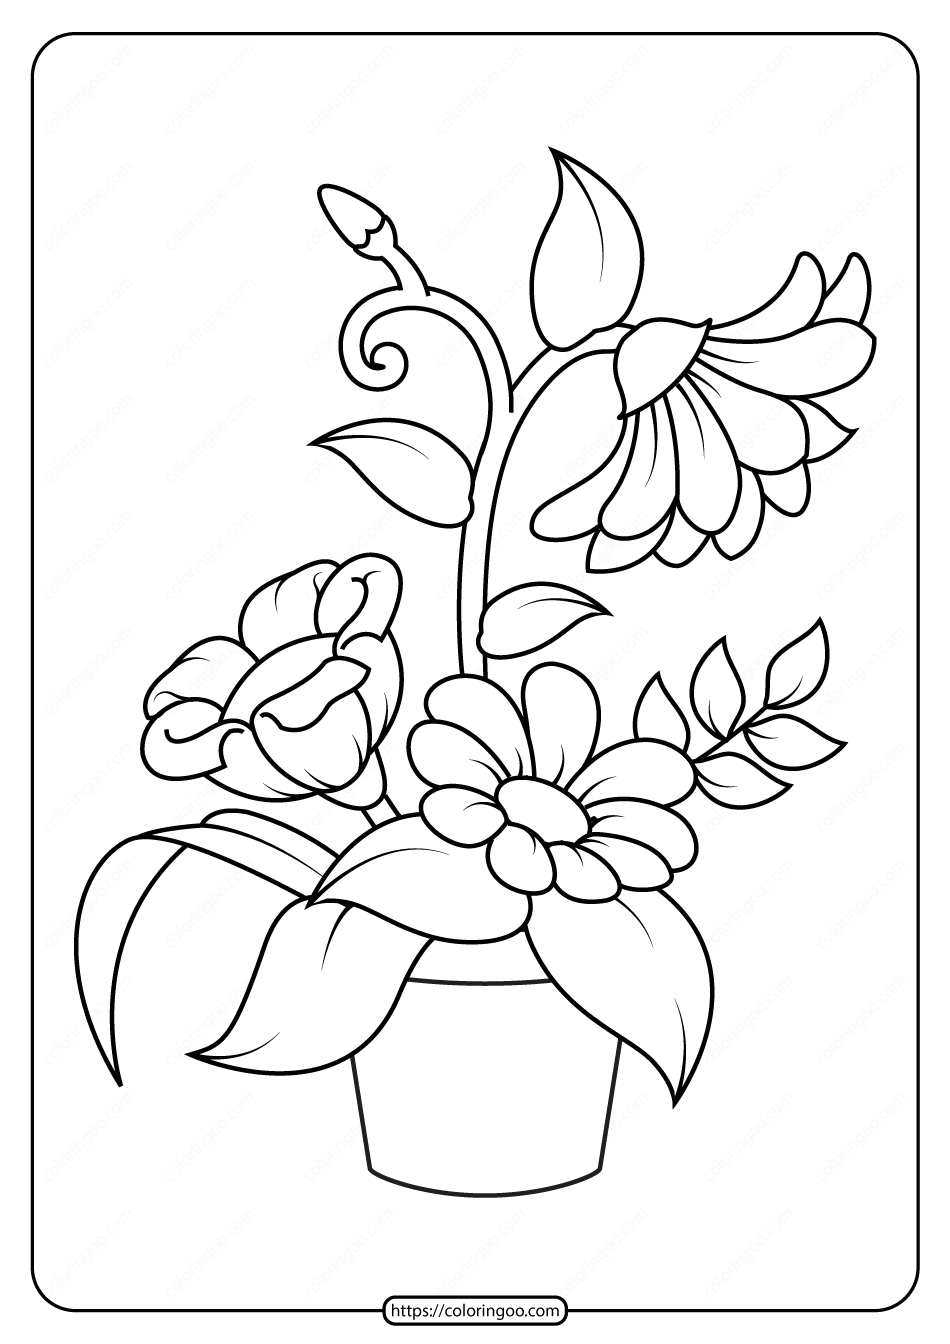 coloring picture of flower flowers coloring pages coloringpages1001com coloring picture flower of